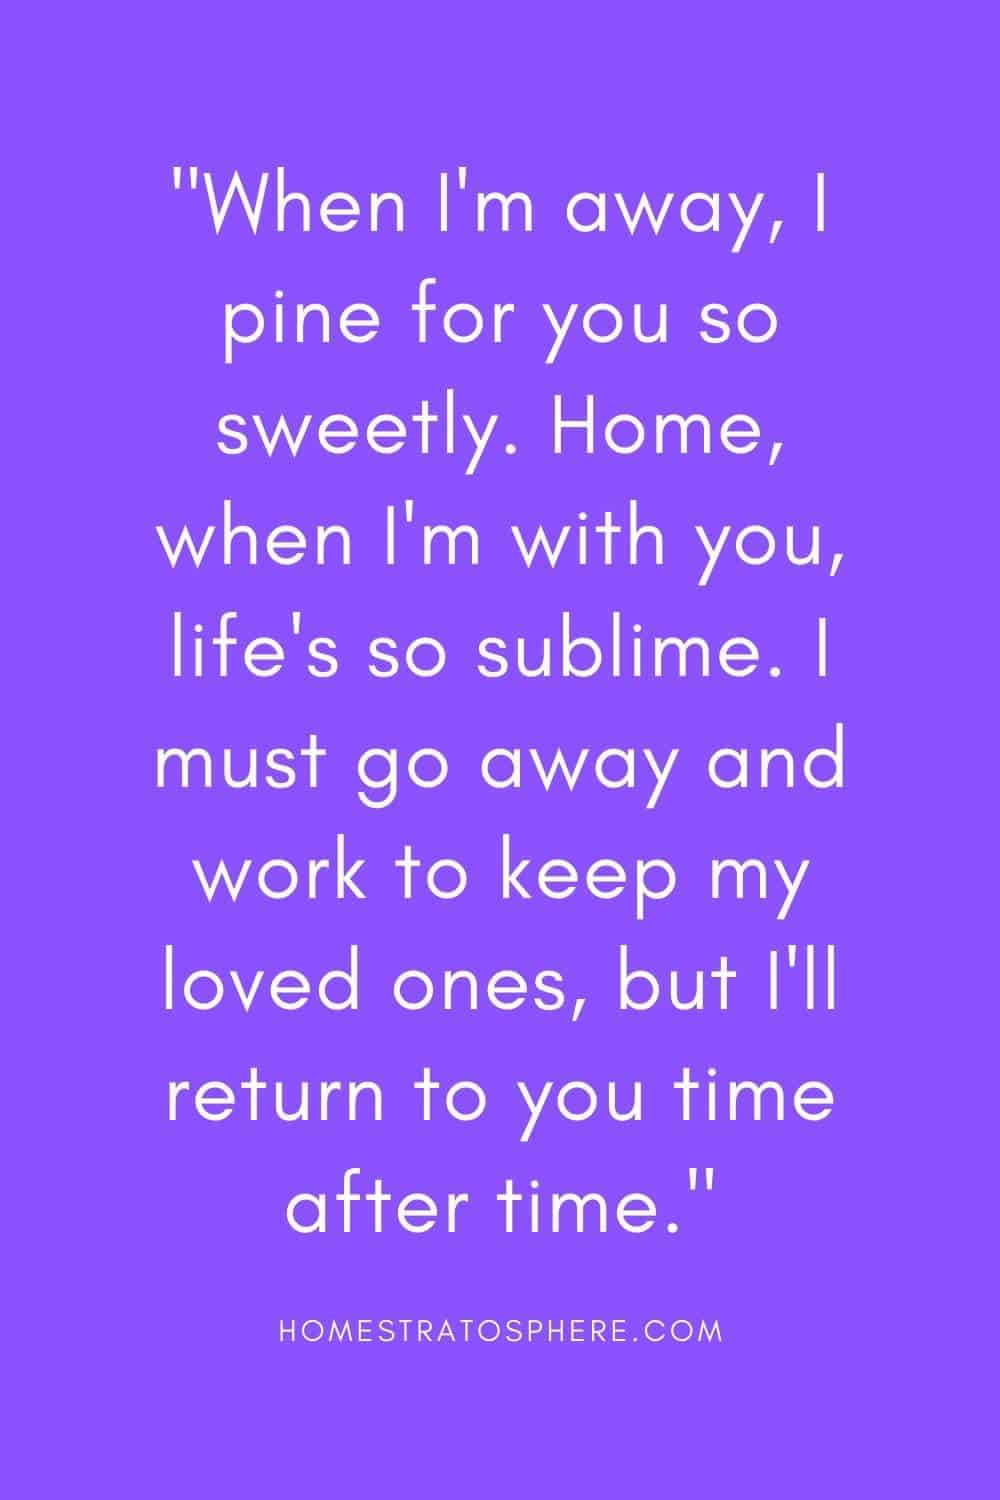 """""""When I'm away, I pine for you so sweetly. Home, when I'm with you, life's so sublime. I must go away and work to keep my loved ones, but I'll return to you time after time."""""""